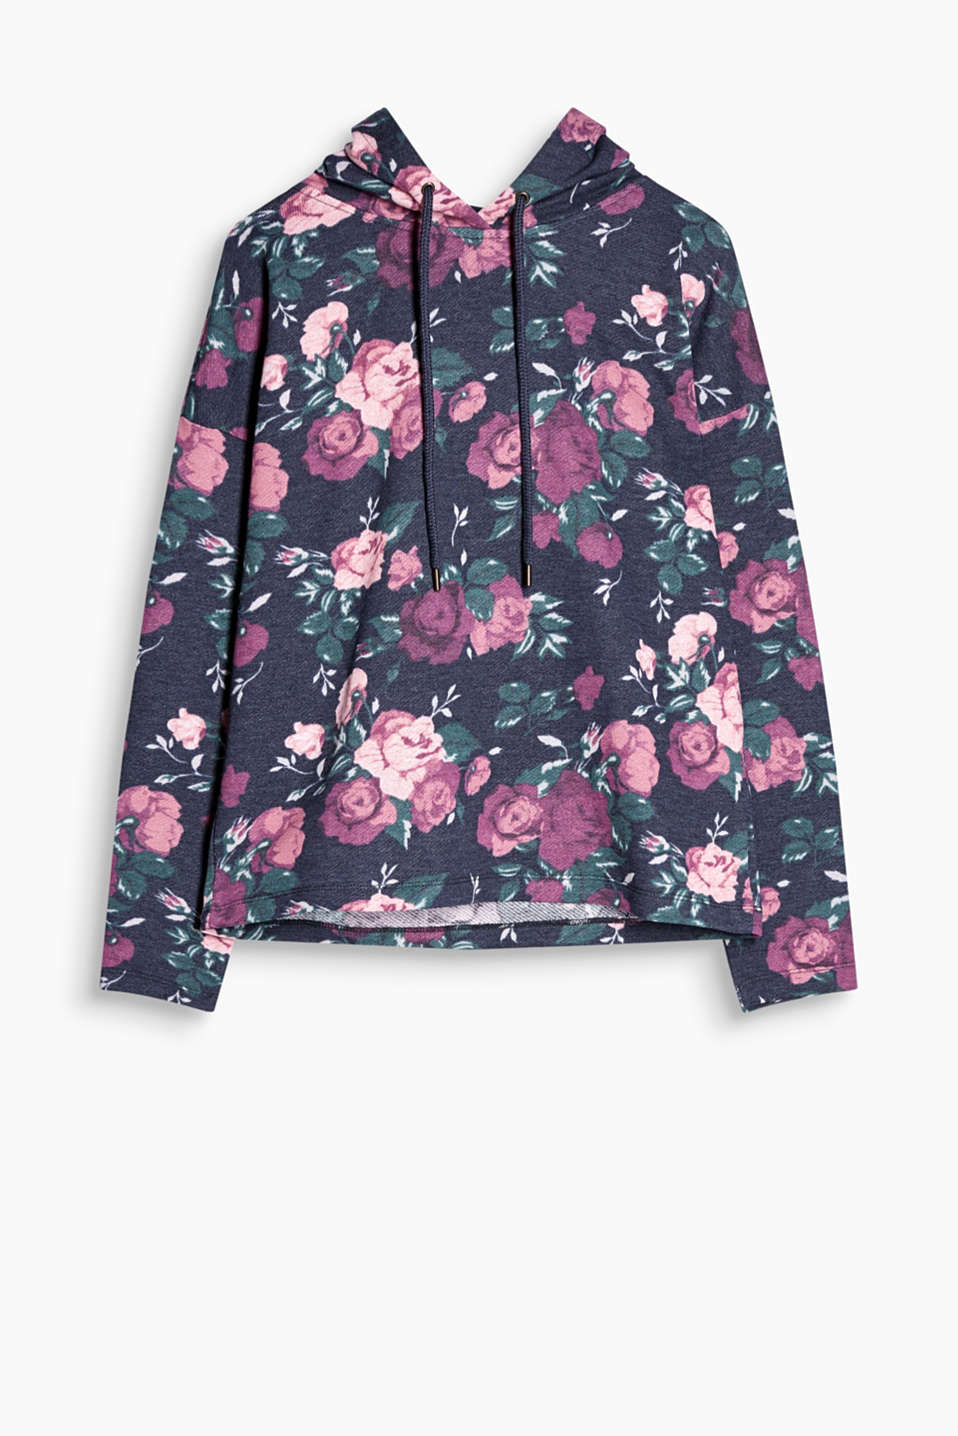 Hoodie in soft blended fabric with an all-over floral print with a hood and a drawstring